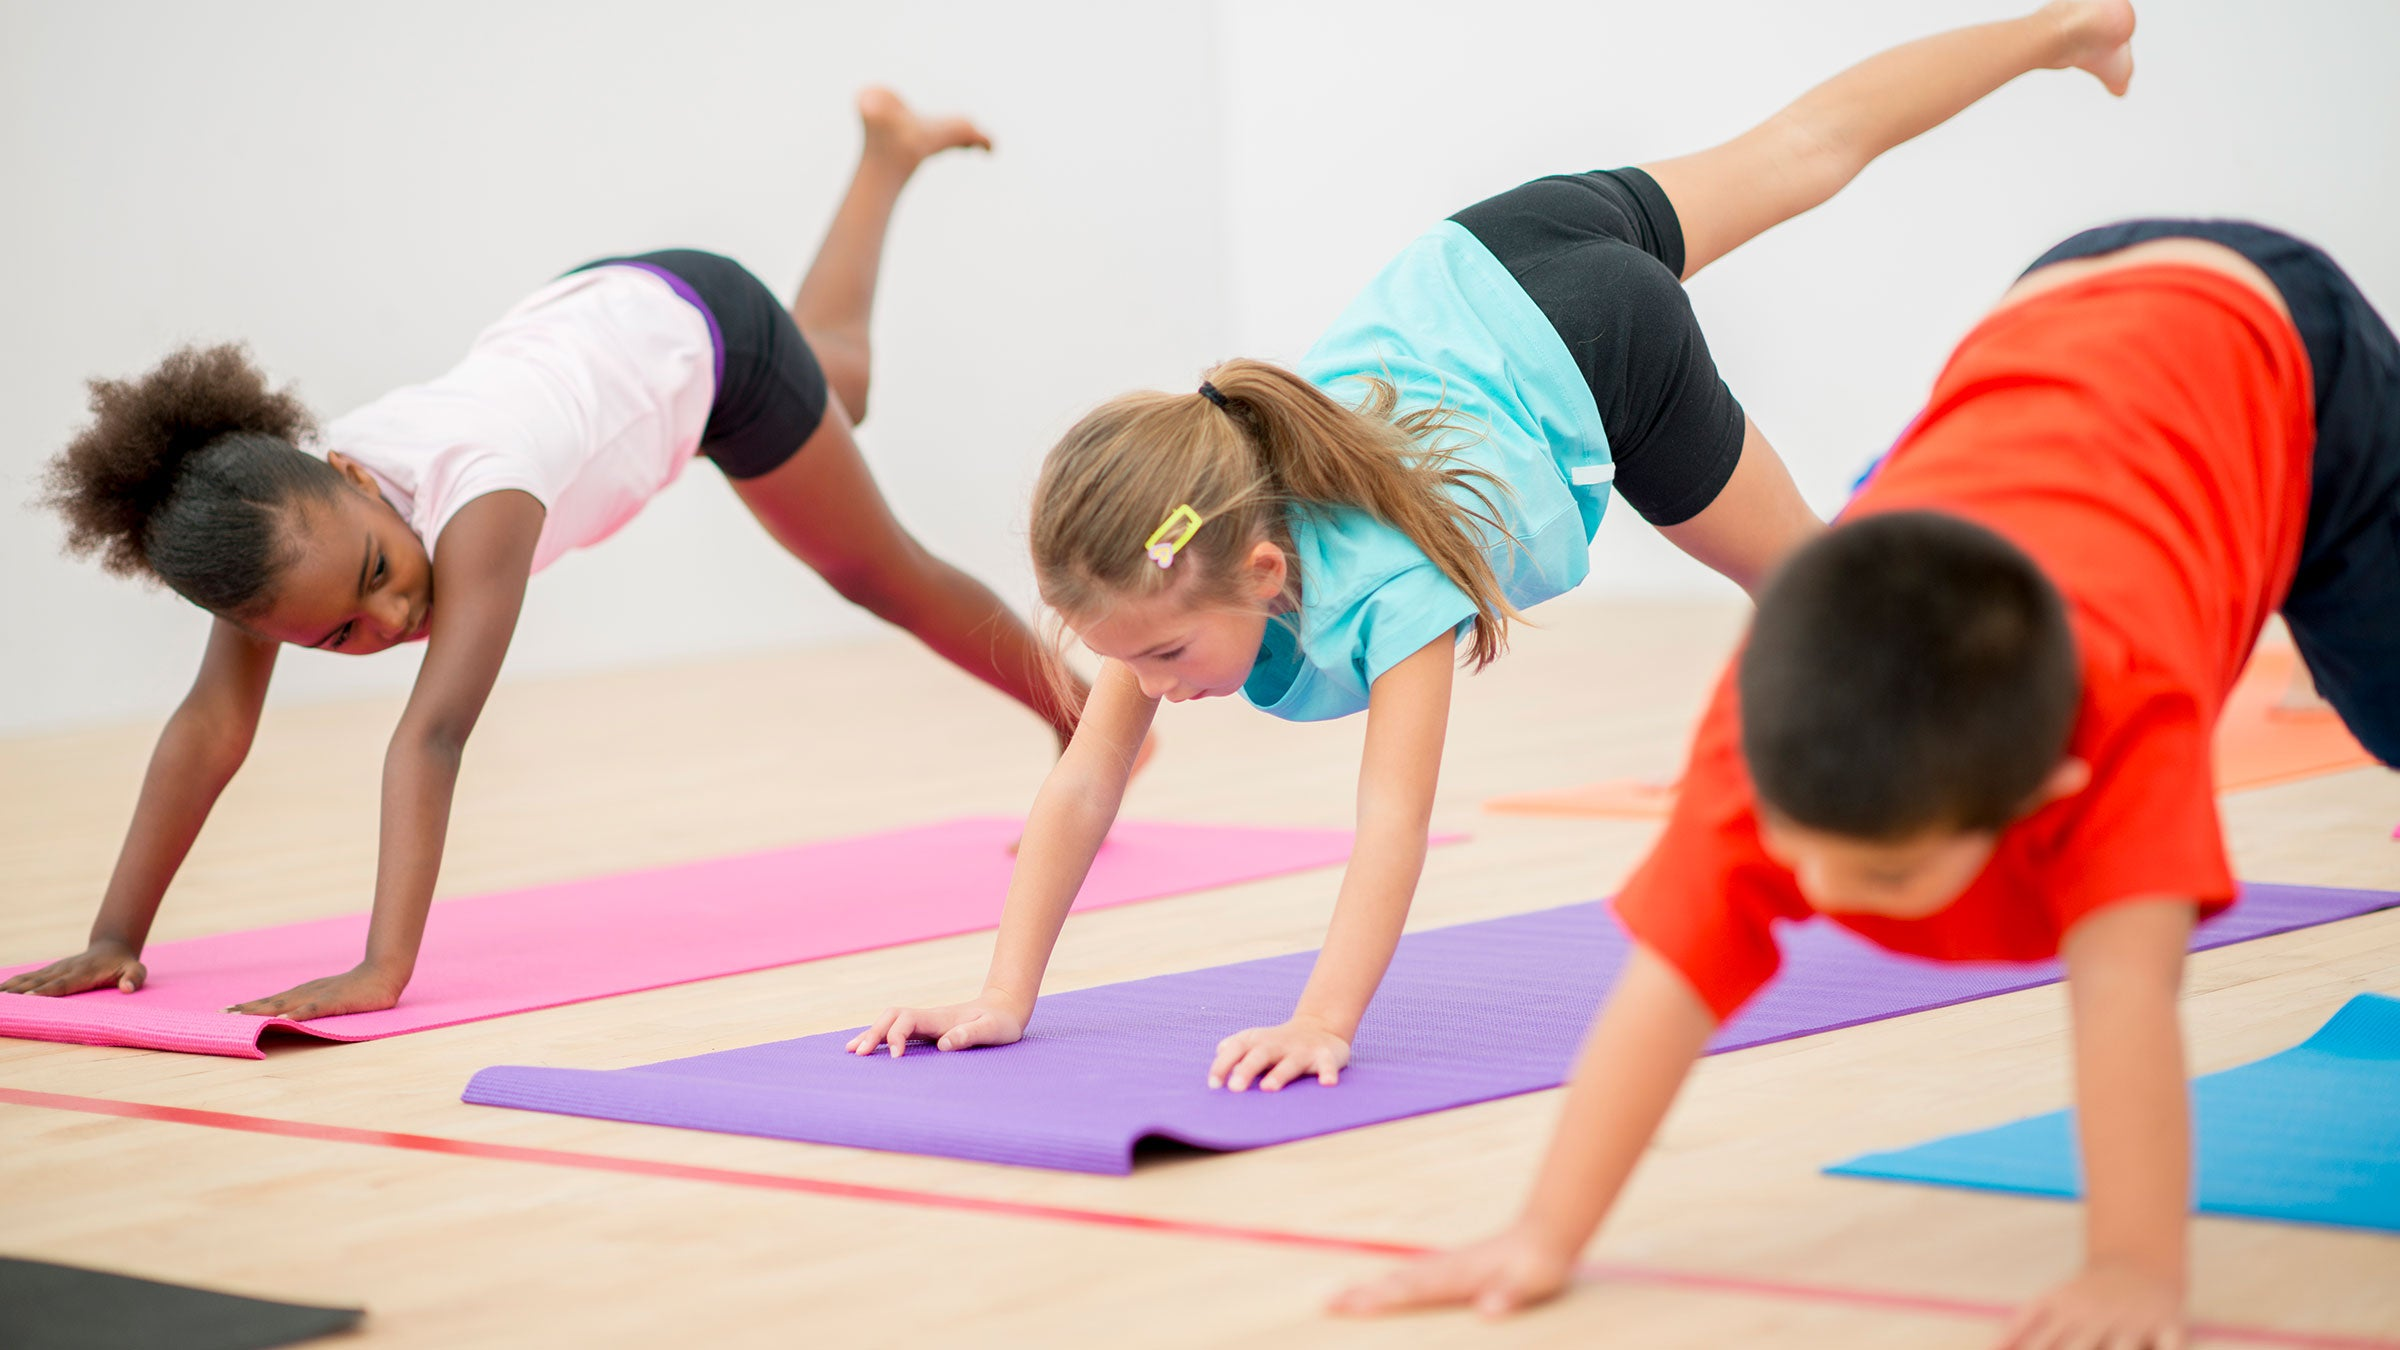 Alabama overturns its 28-year ban on yoga in schools spurred by 'fears it would convert students to Hinduism' – but chants and salutations like 'namaste' are still forbidden